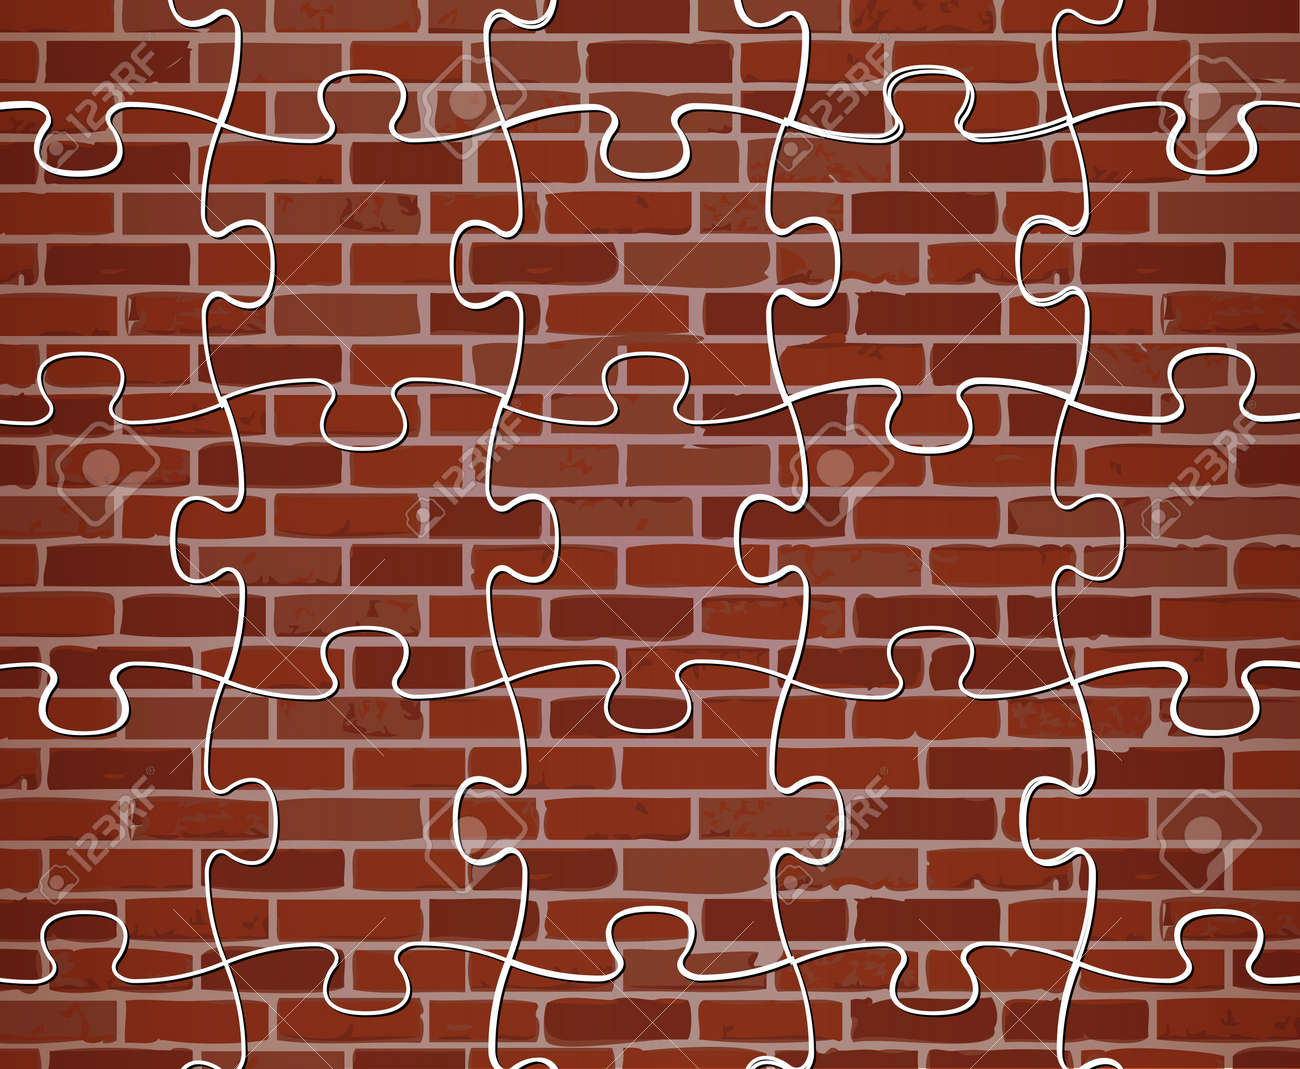 illustration colorful puzzle brick wall illustration design background - Brick Wall Design